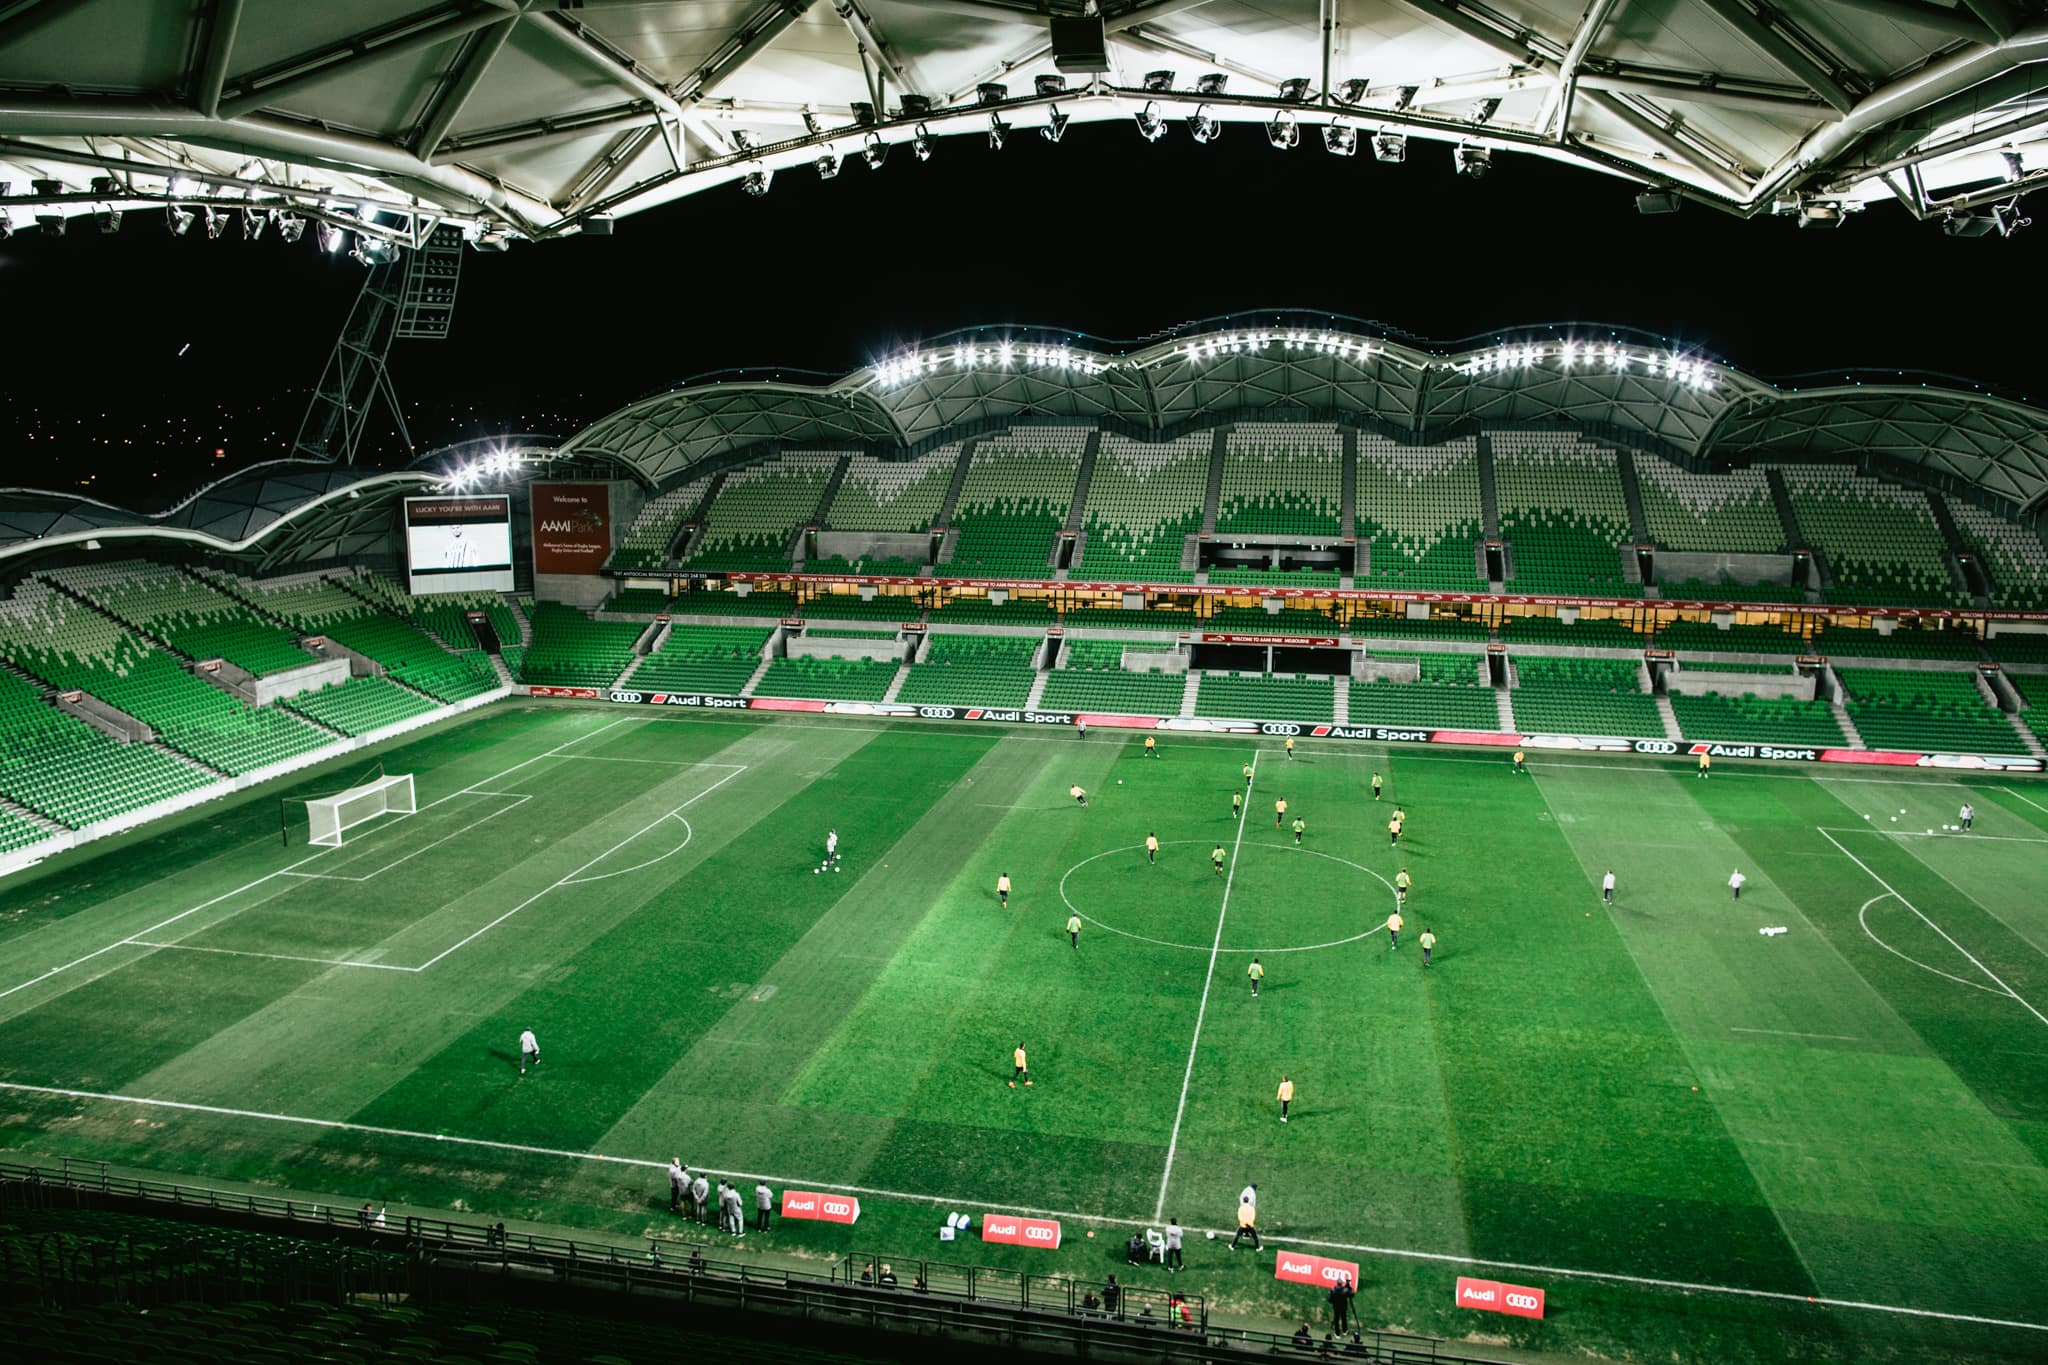 aami park stadium - photographer captures events and atmosphere